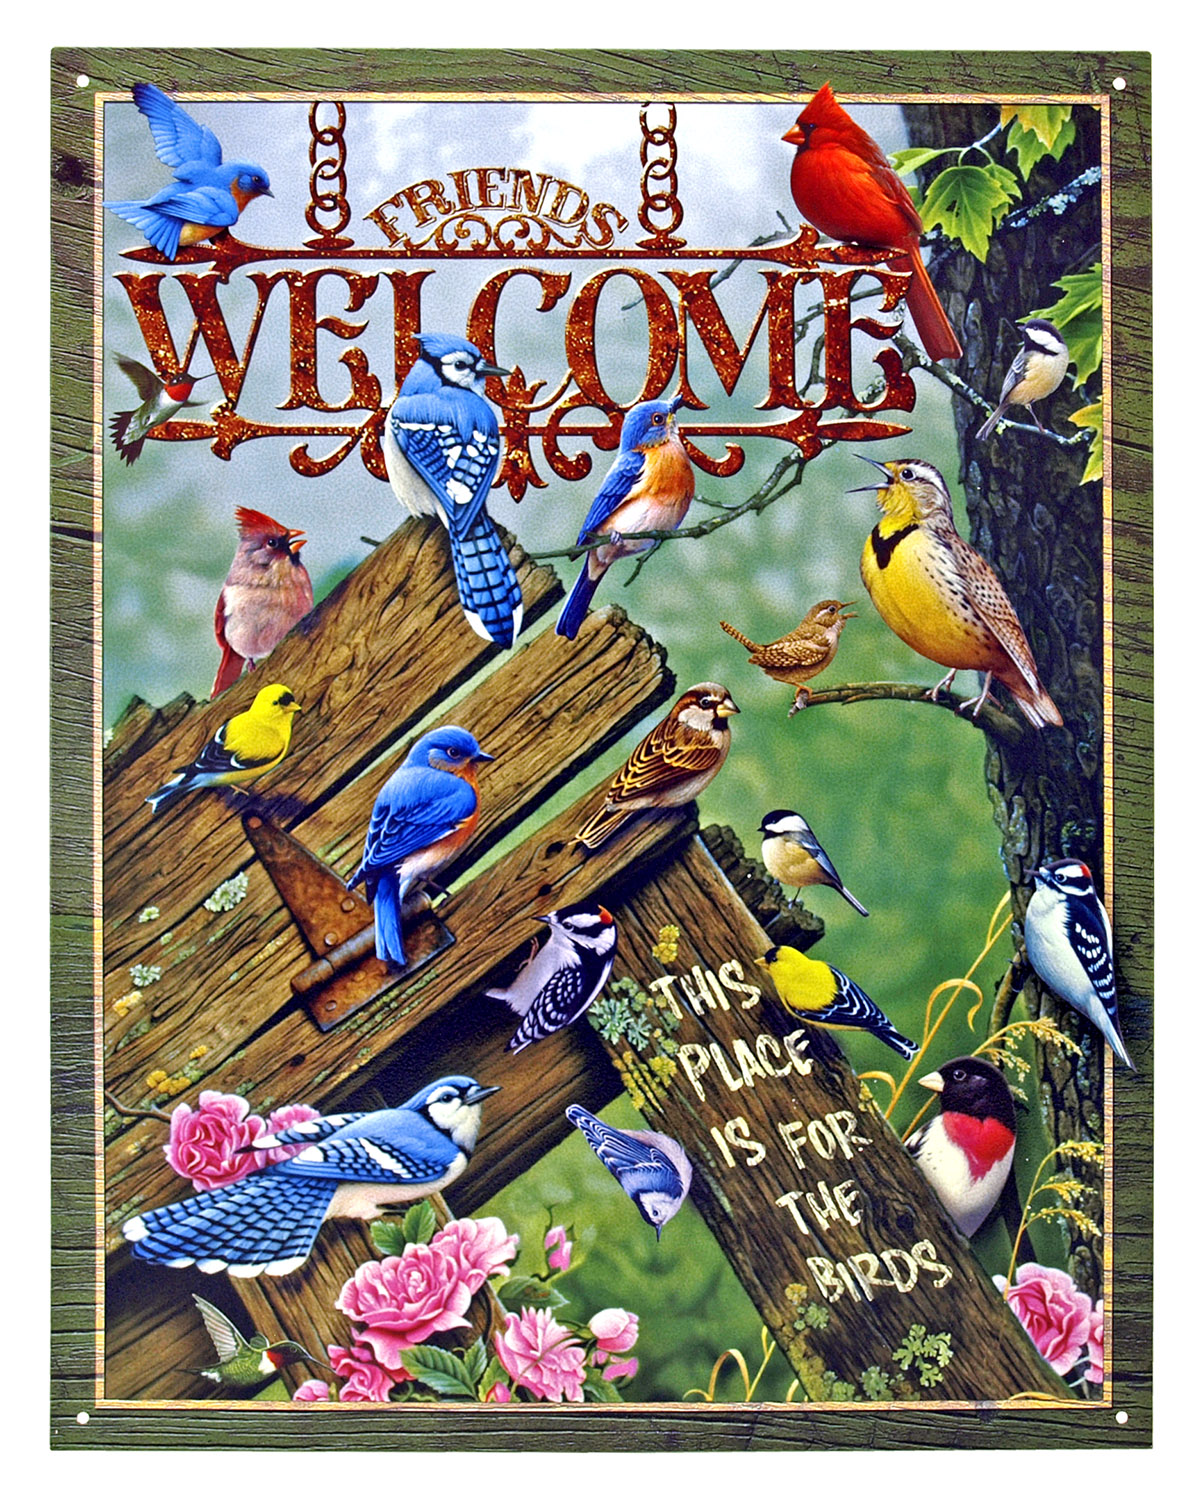 Welcome, This Place is for the Birds - Tin Sign